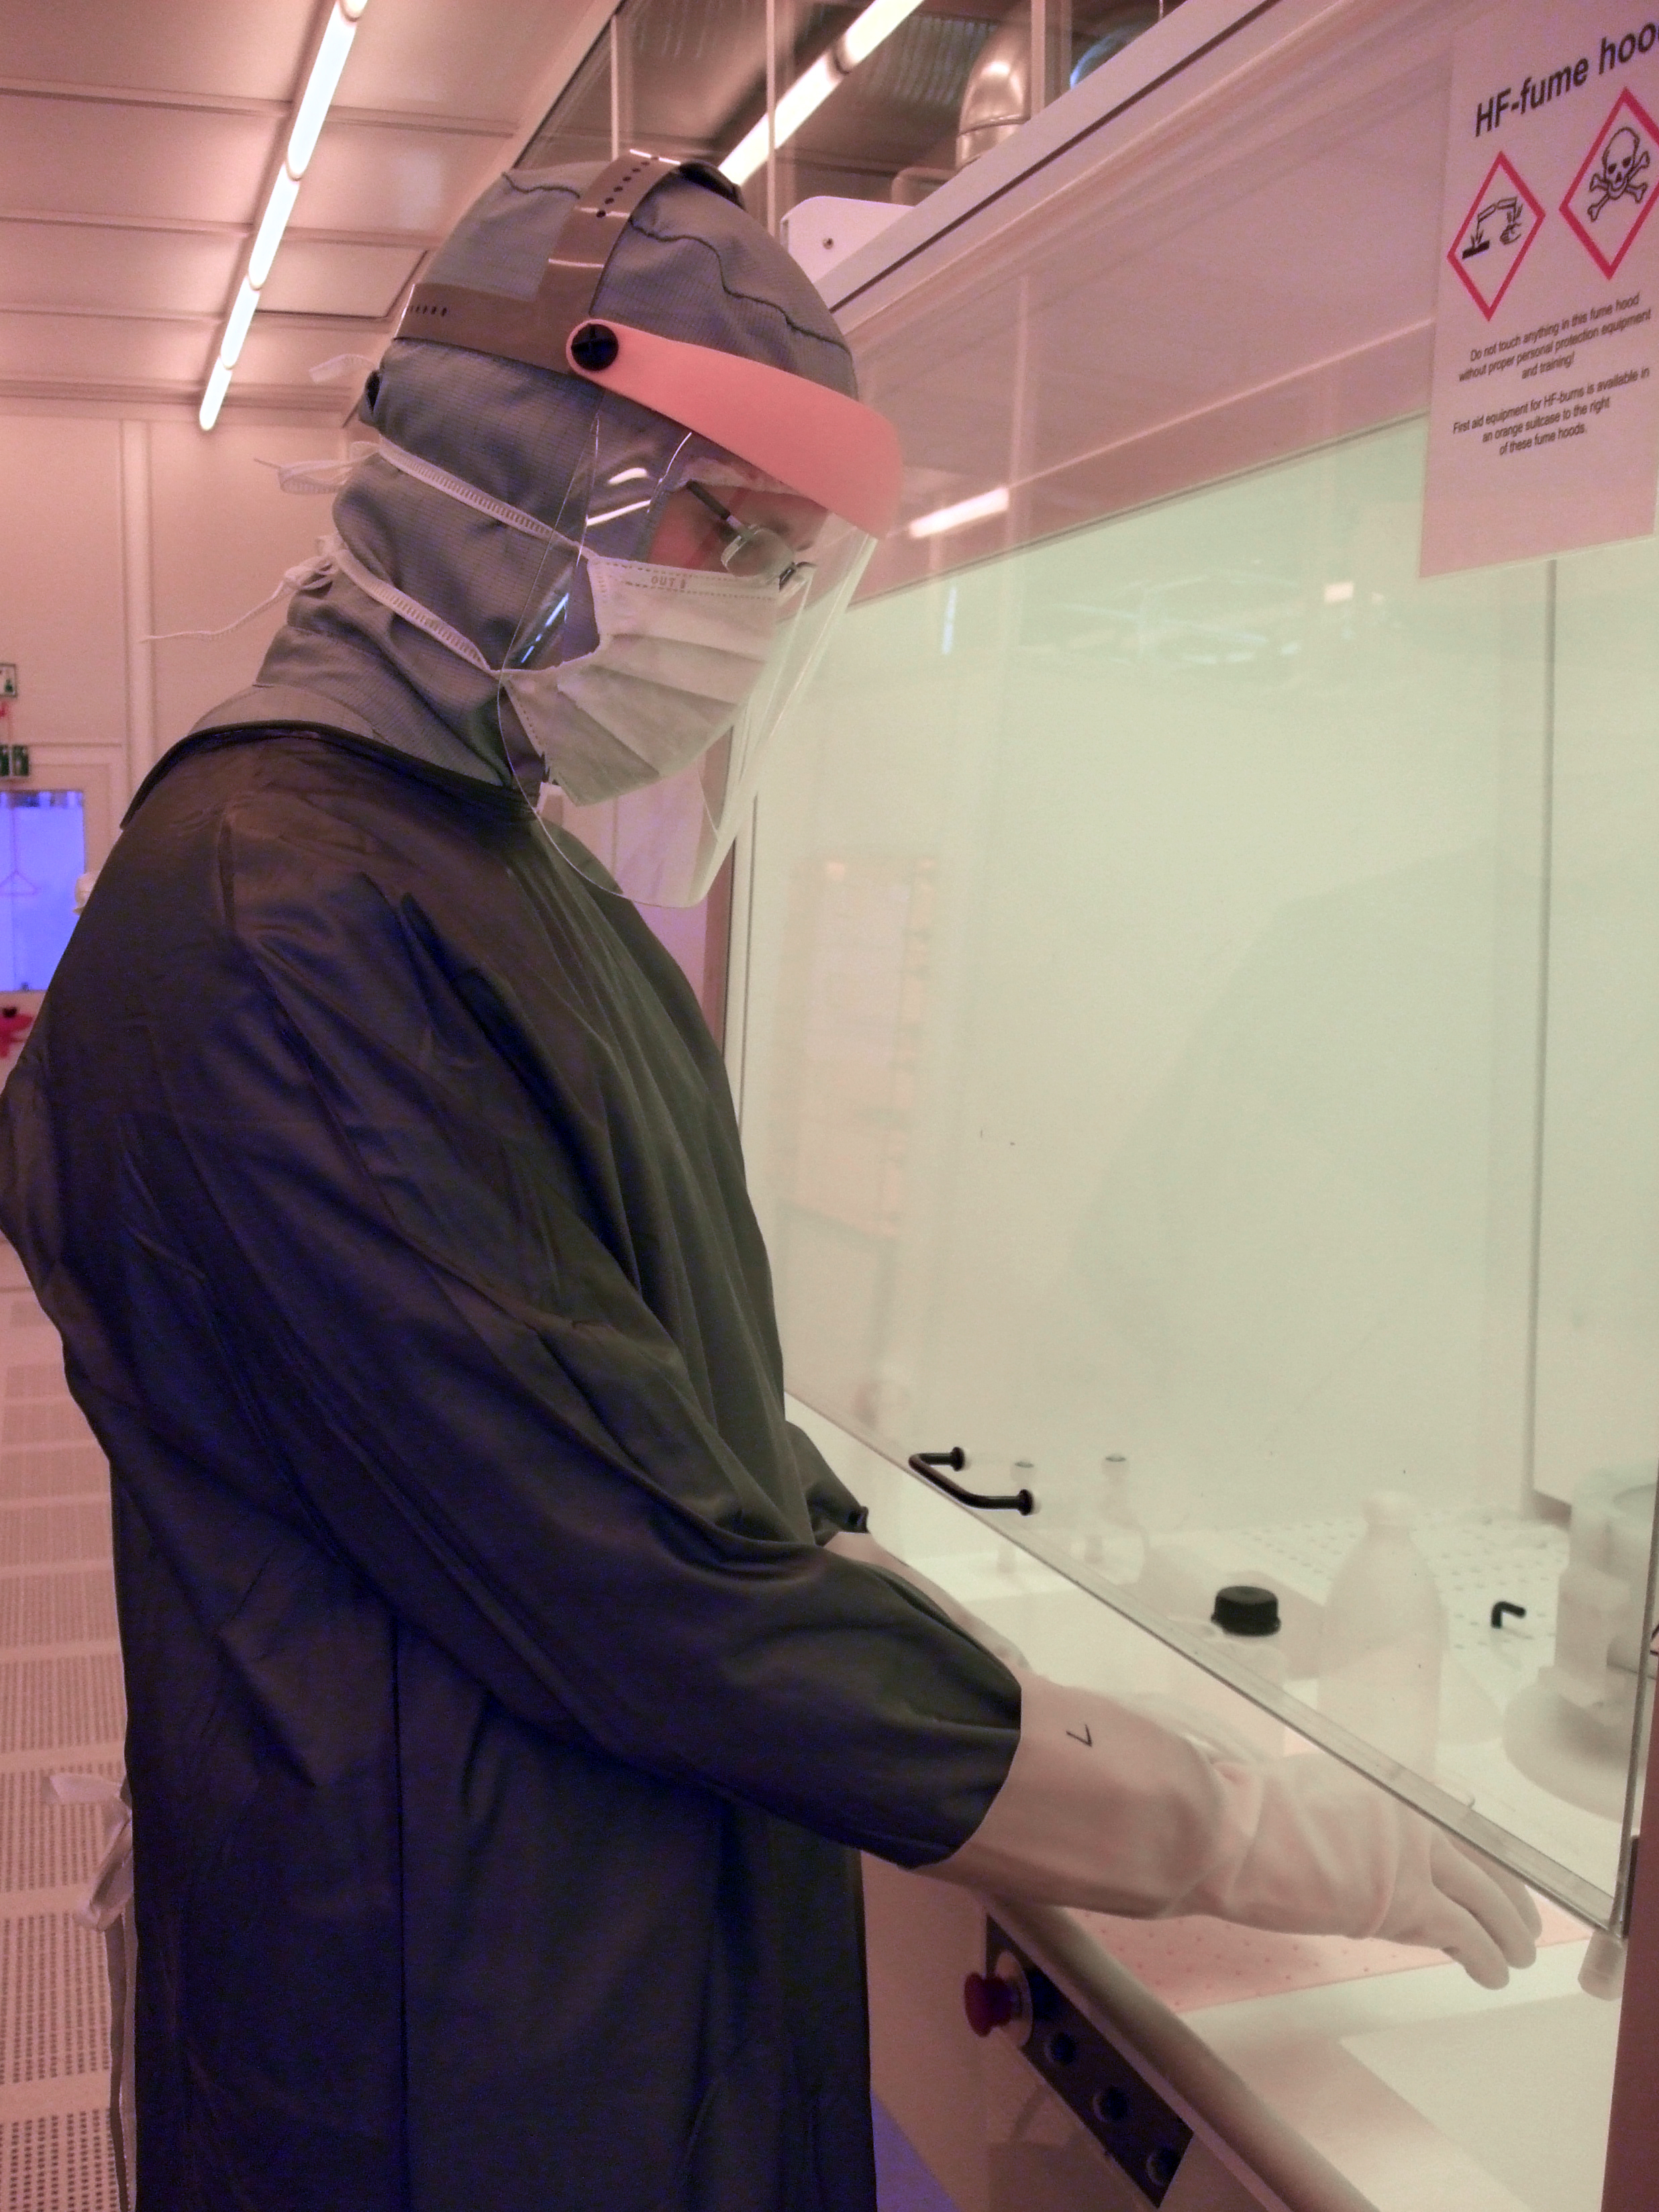 Picture of HF fume hood